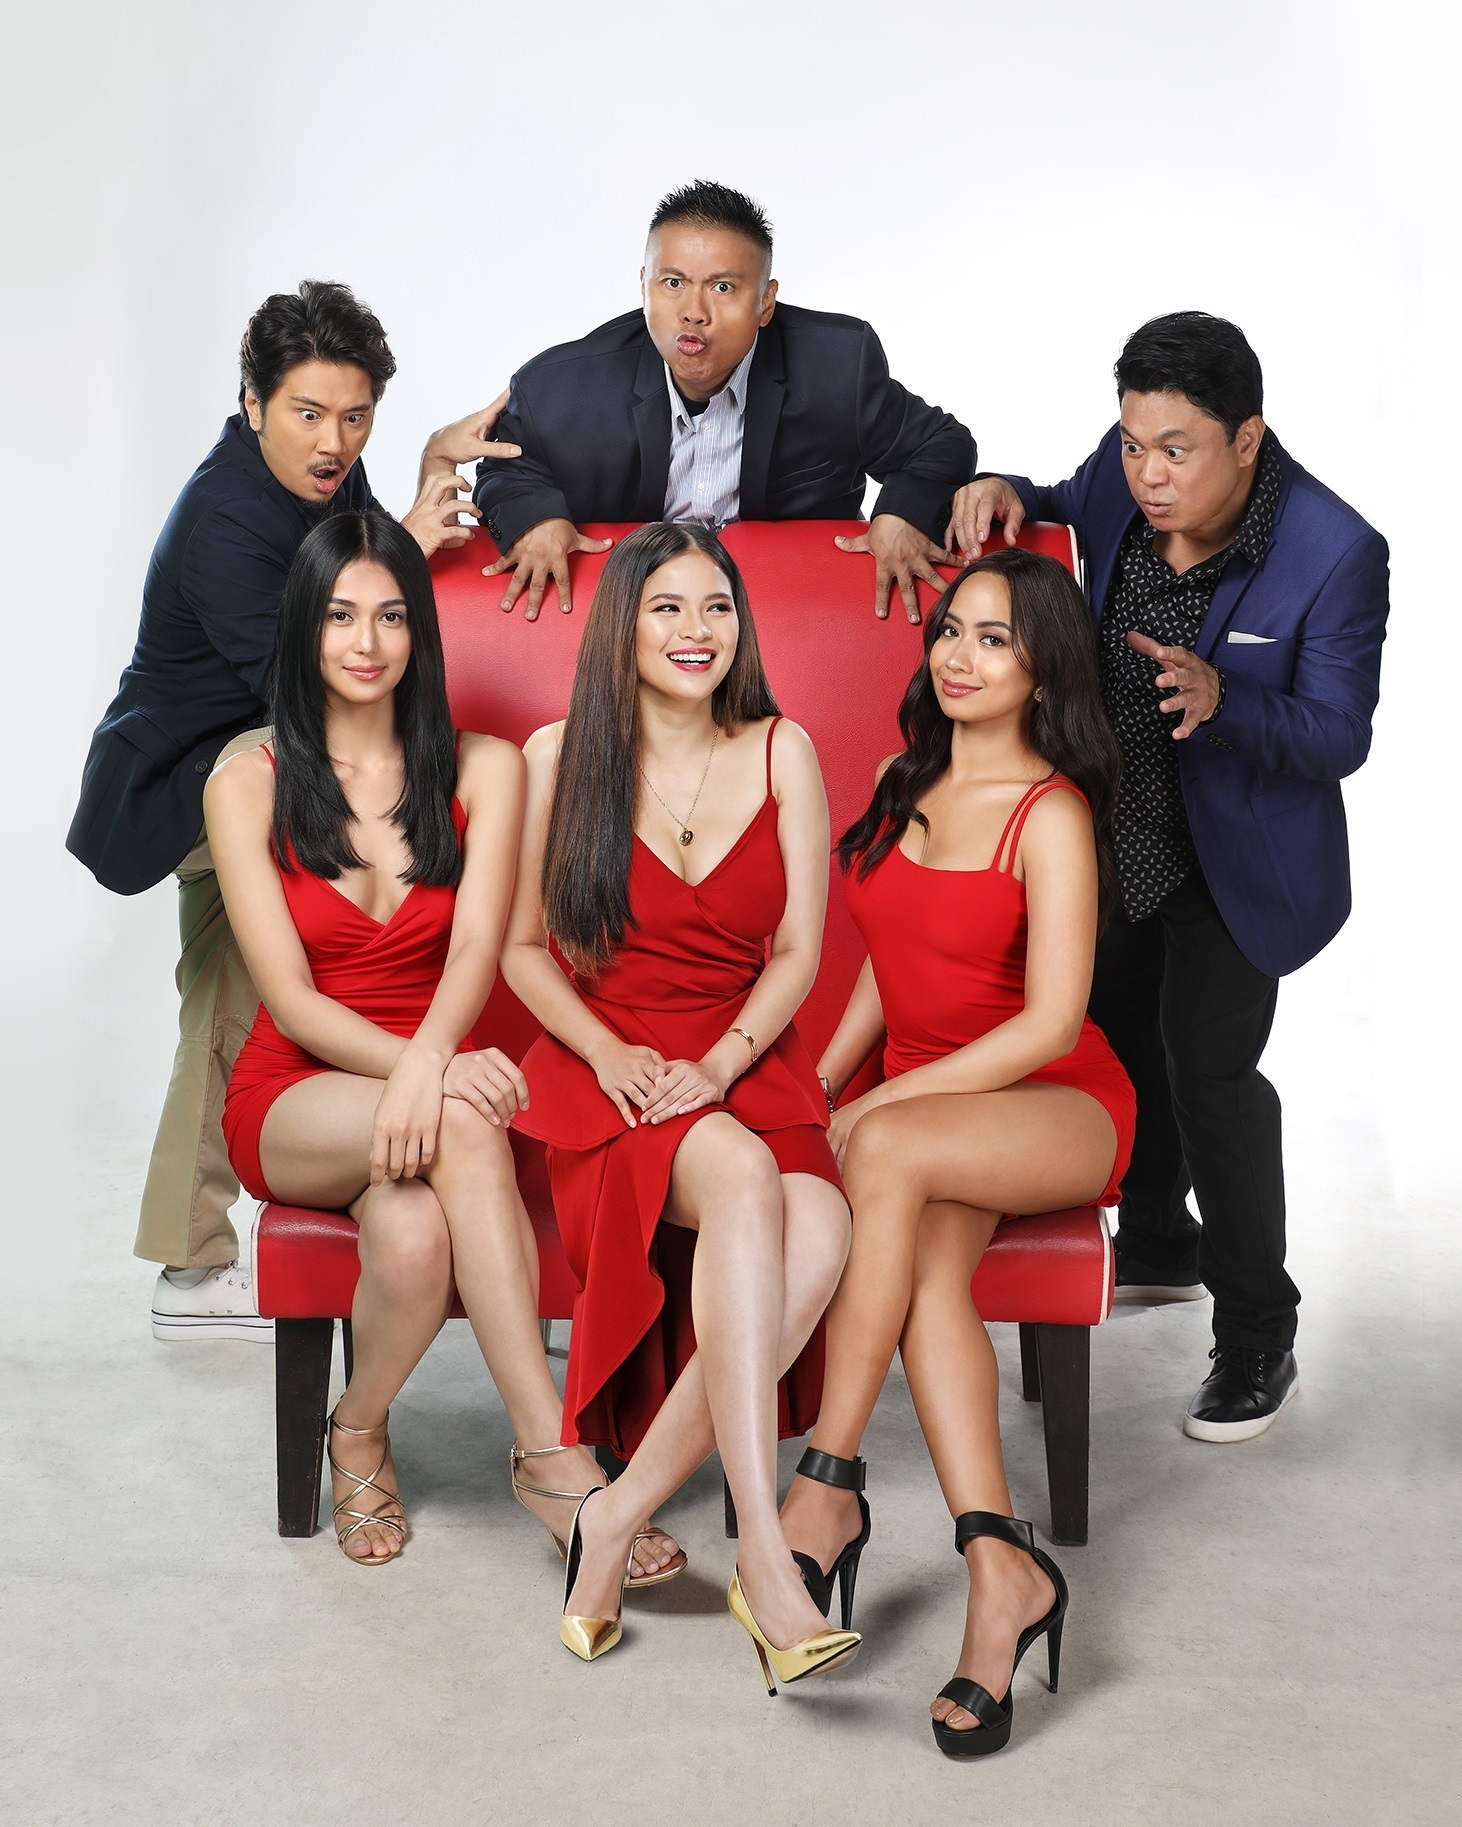 The cast of Sanggano, Sanggago't Sanggwapo: standing from left, Janno Gibbs, Andrew E., and Dennis Padilla; seated from left, Vanessa Wright, Louise de los Reyes,Debbie Garcia